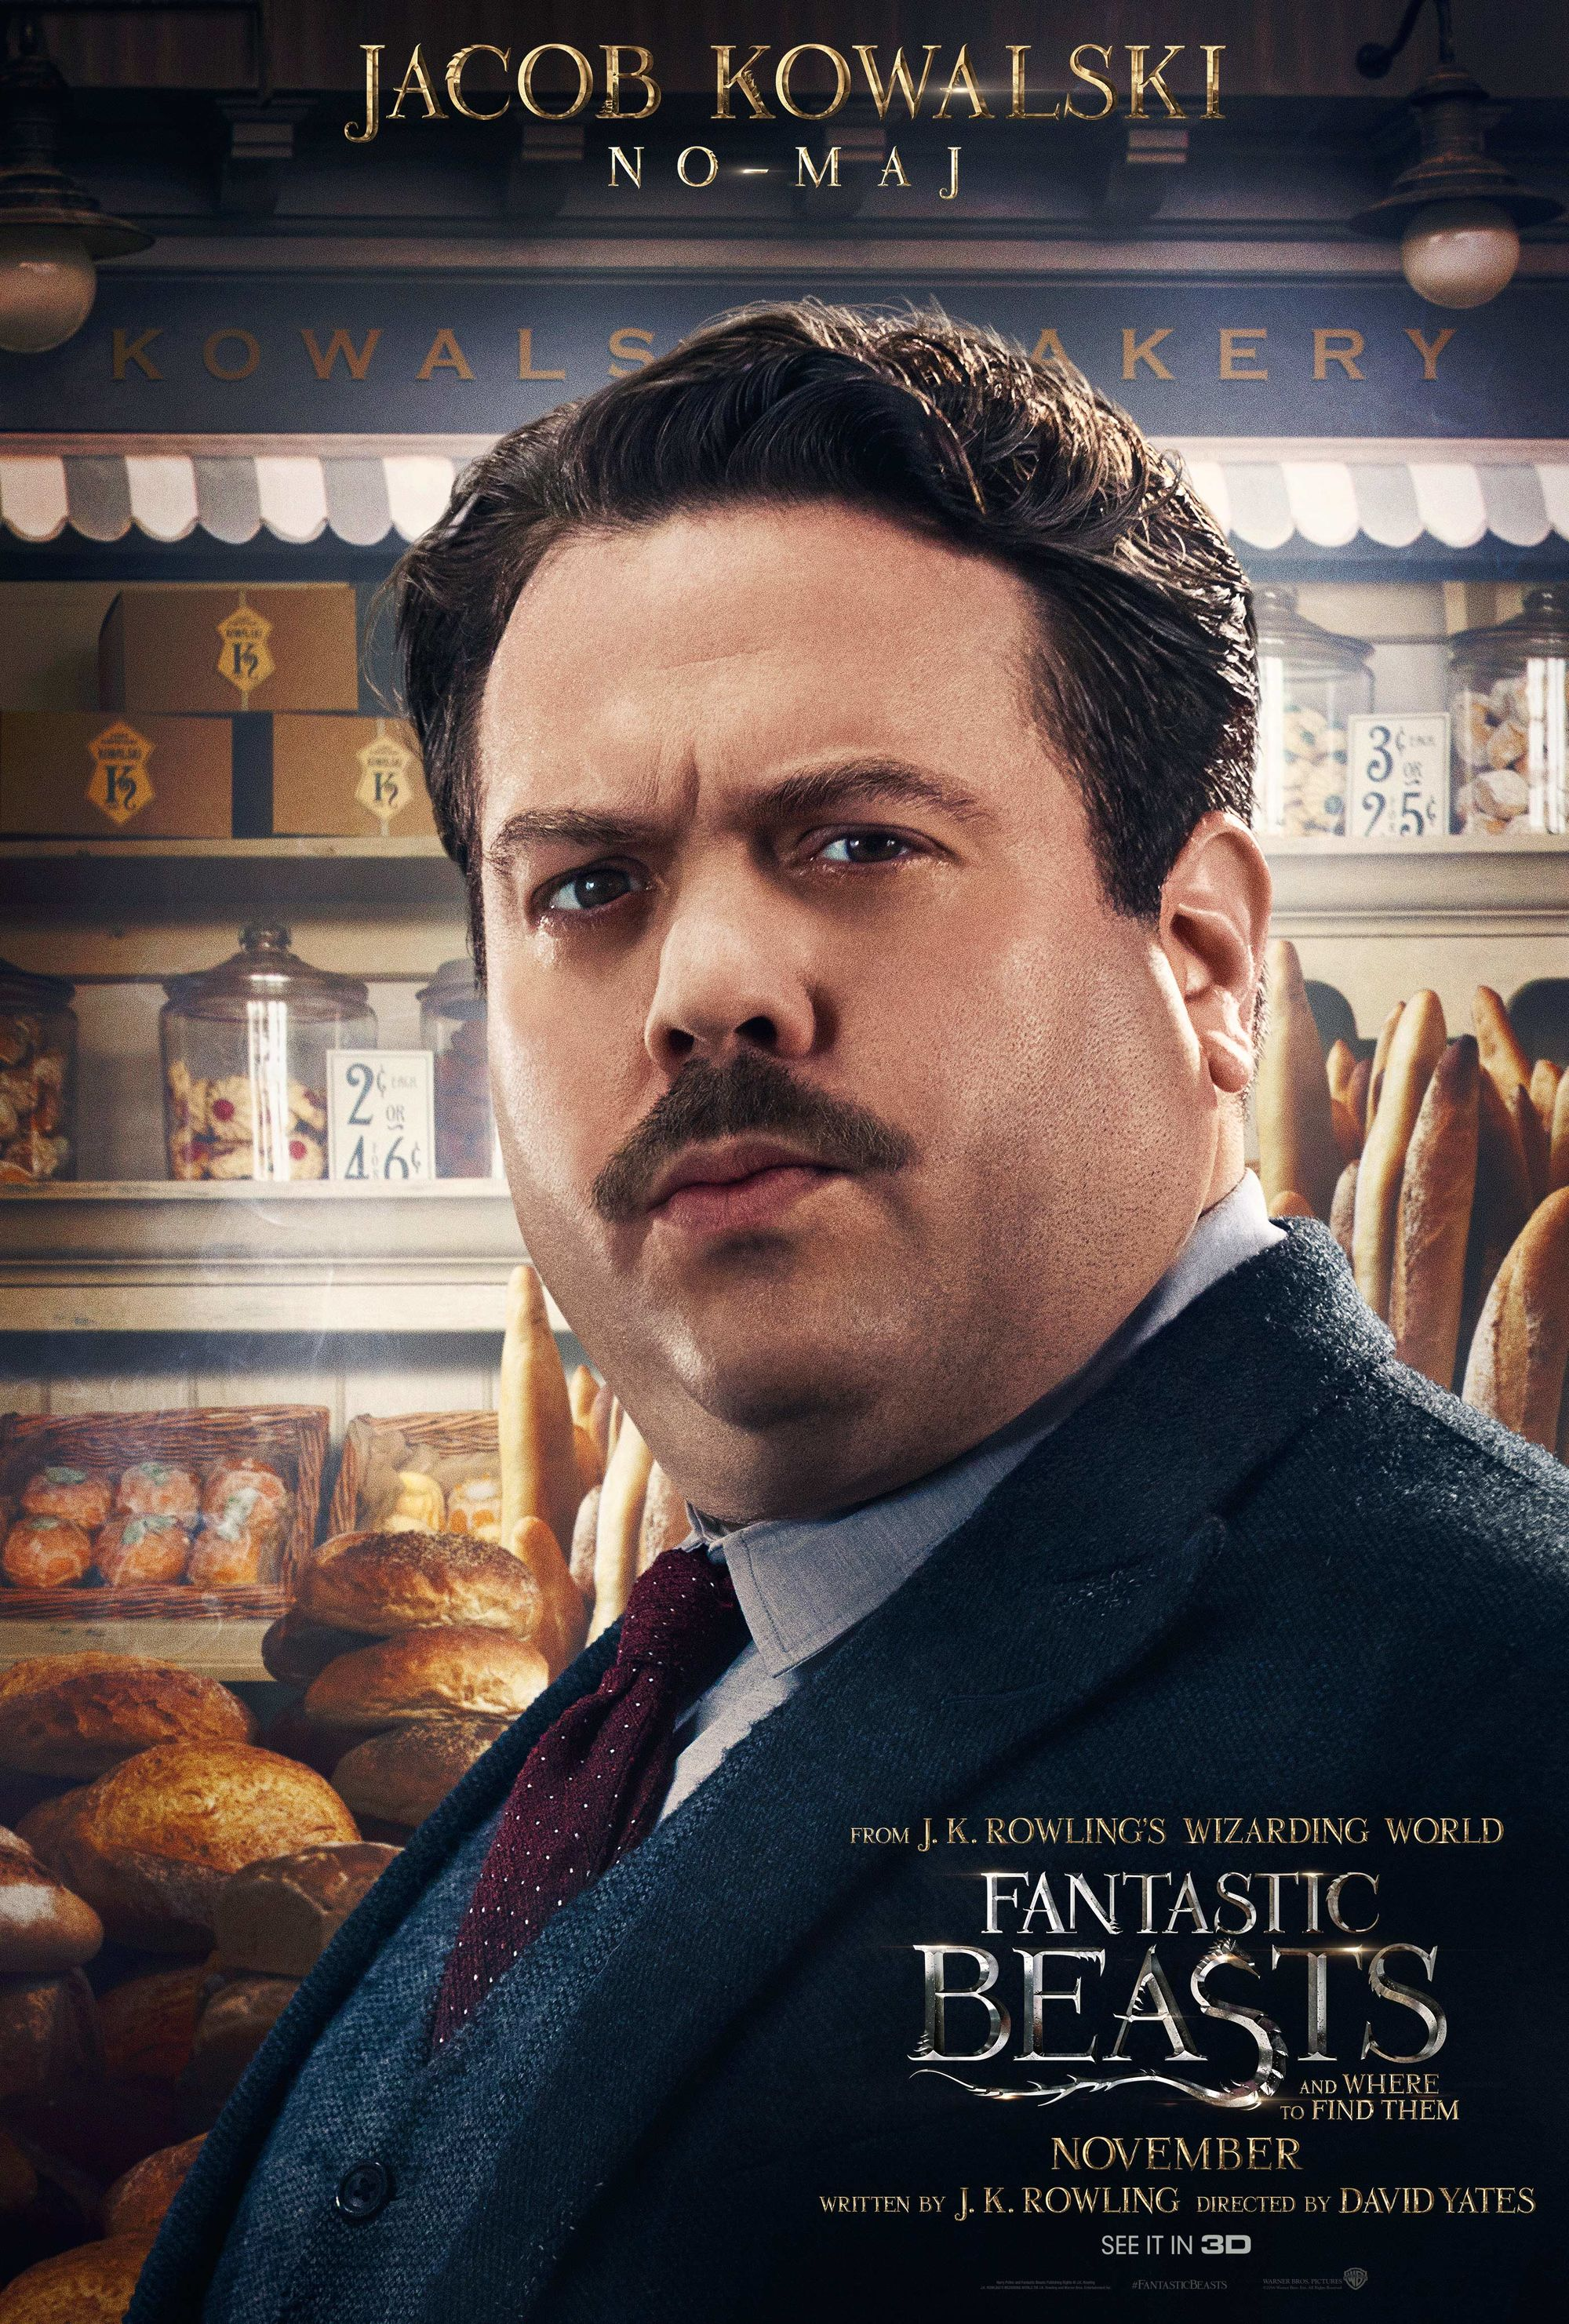 Fantastic Beasts And Where To Find Them Images Fantastic Dan Fogler Fantastic Beast 1343330 Hd Wallpaper Backgrounds Download